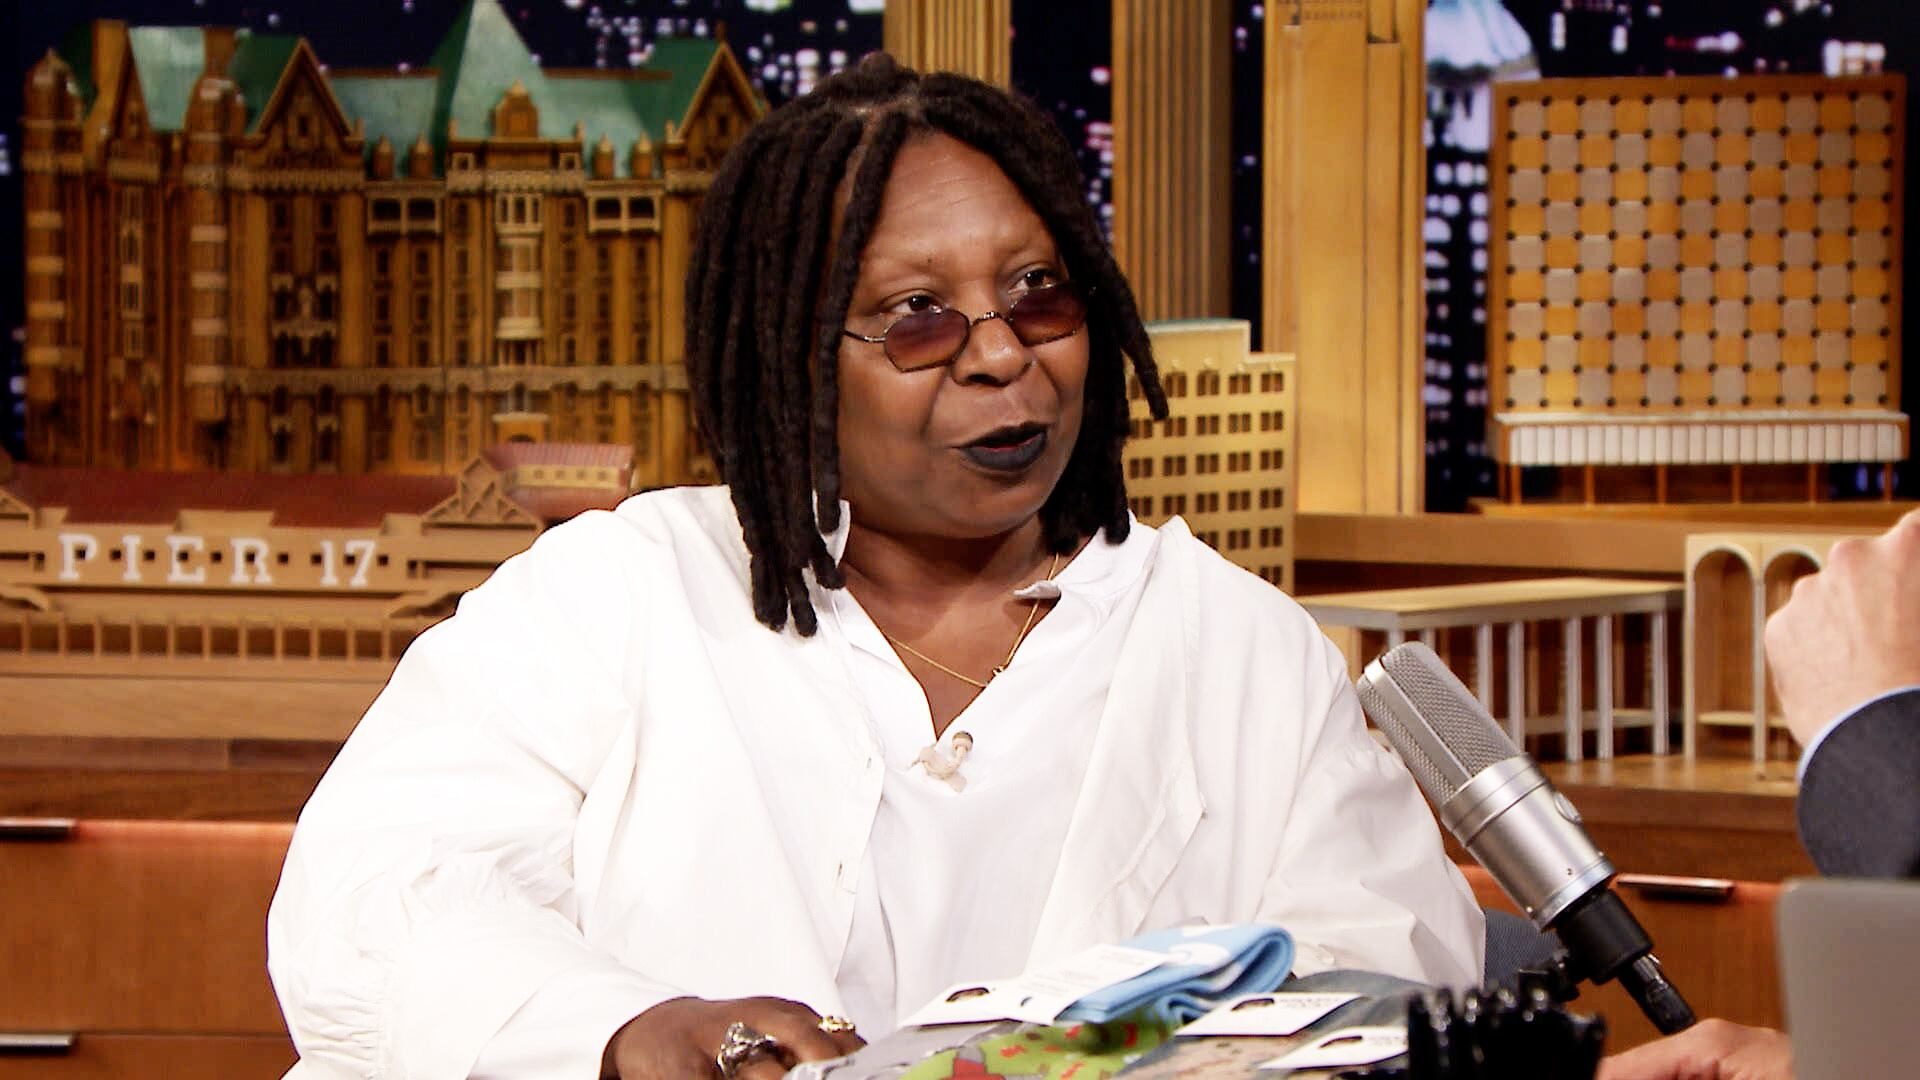 Whoopi Goldberg Has Socks with Her Face on Them